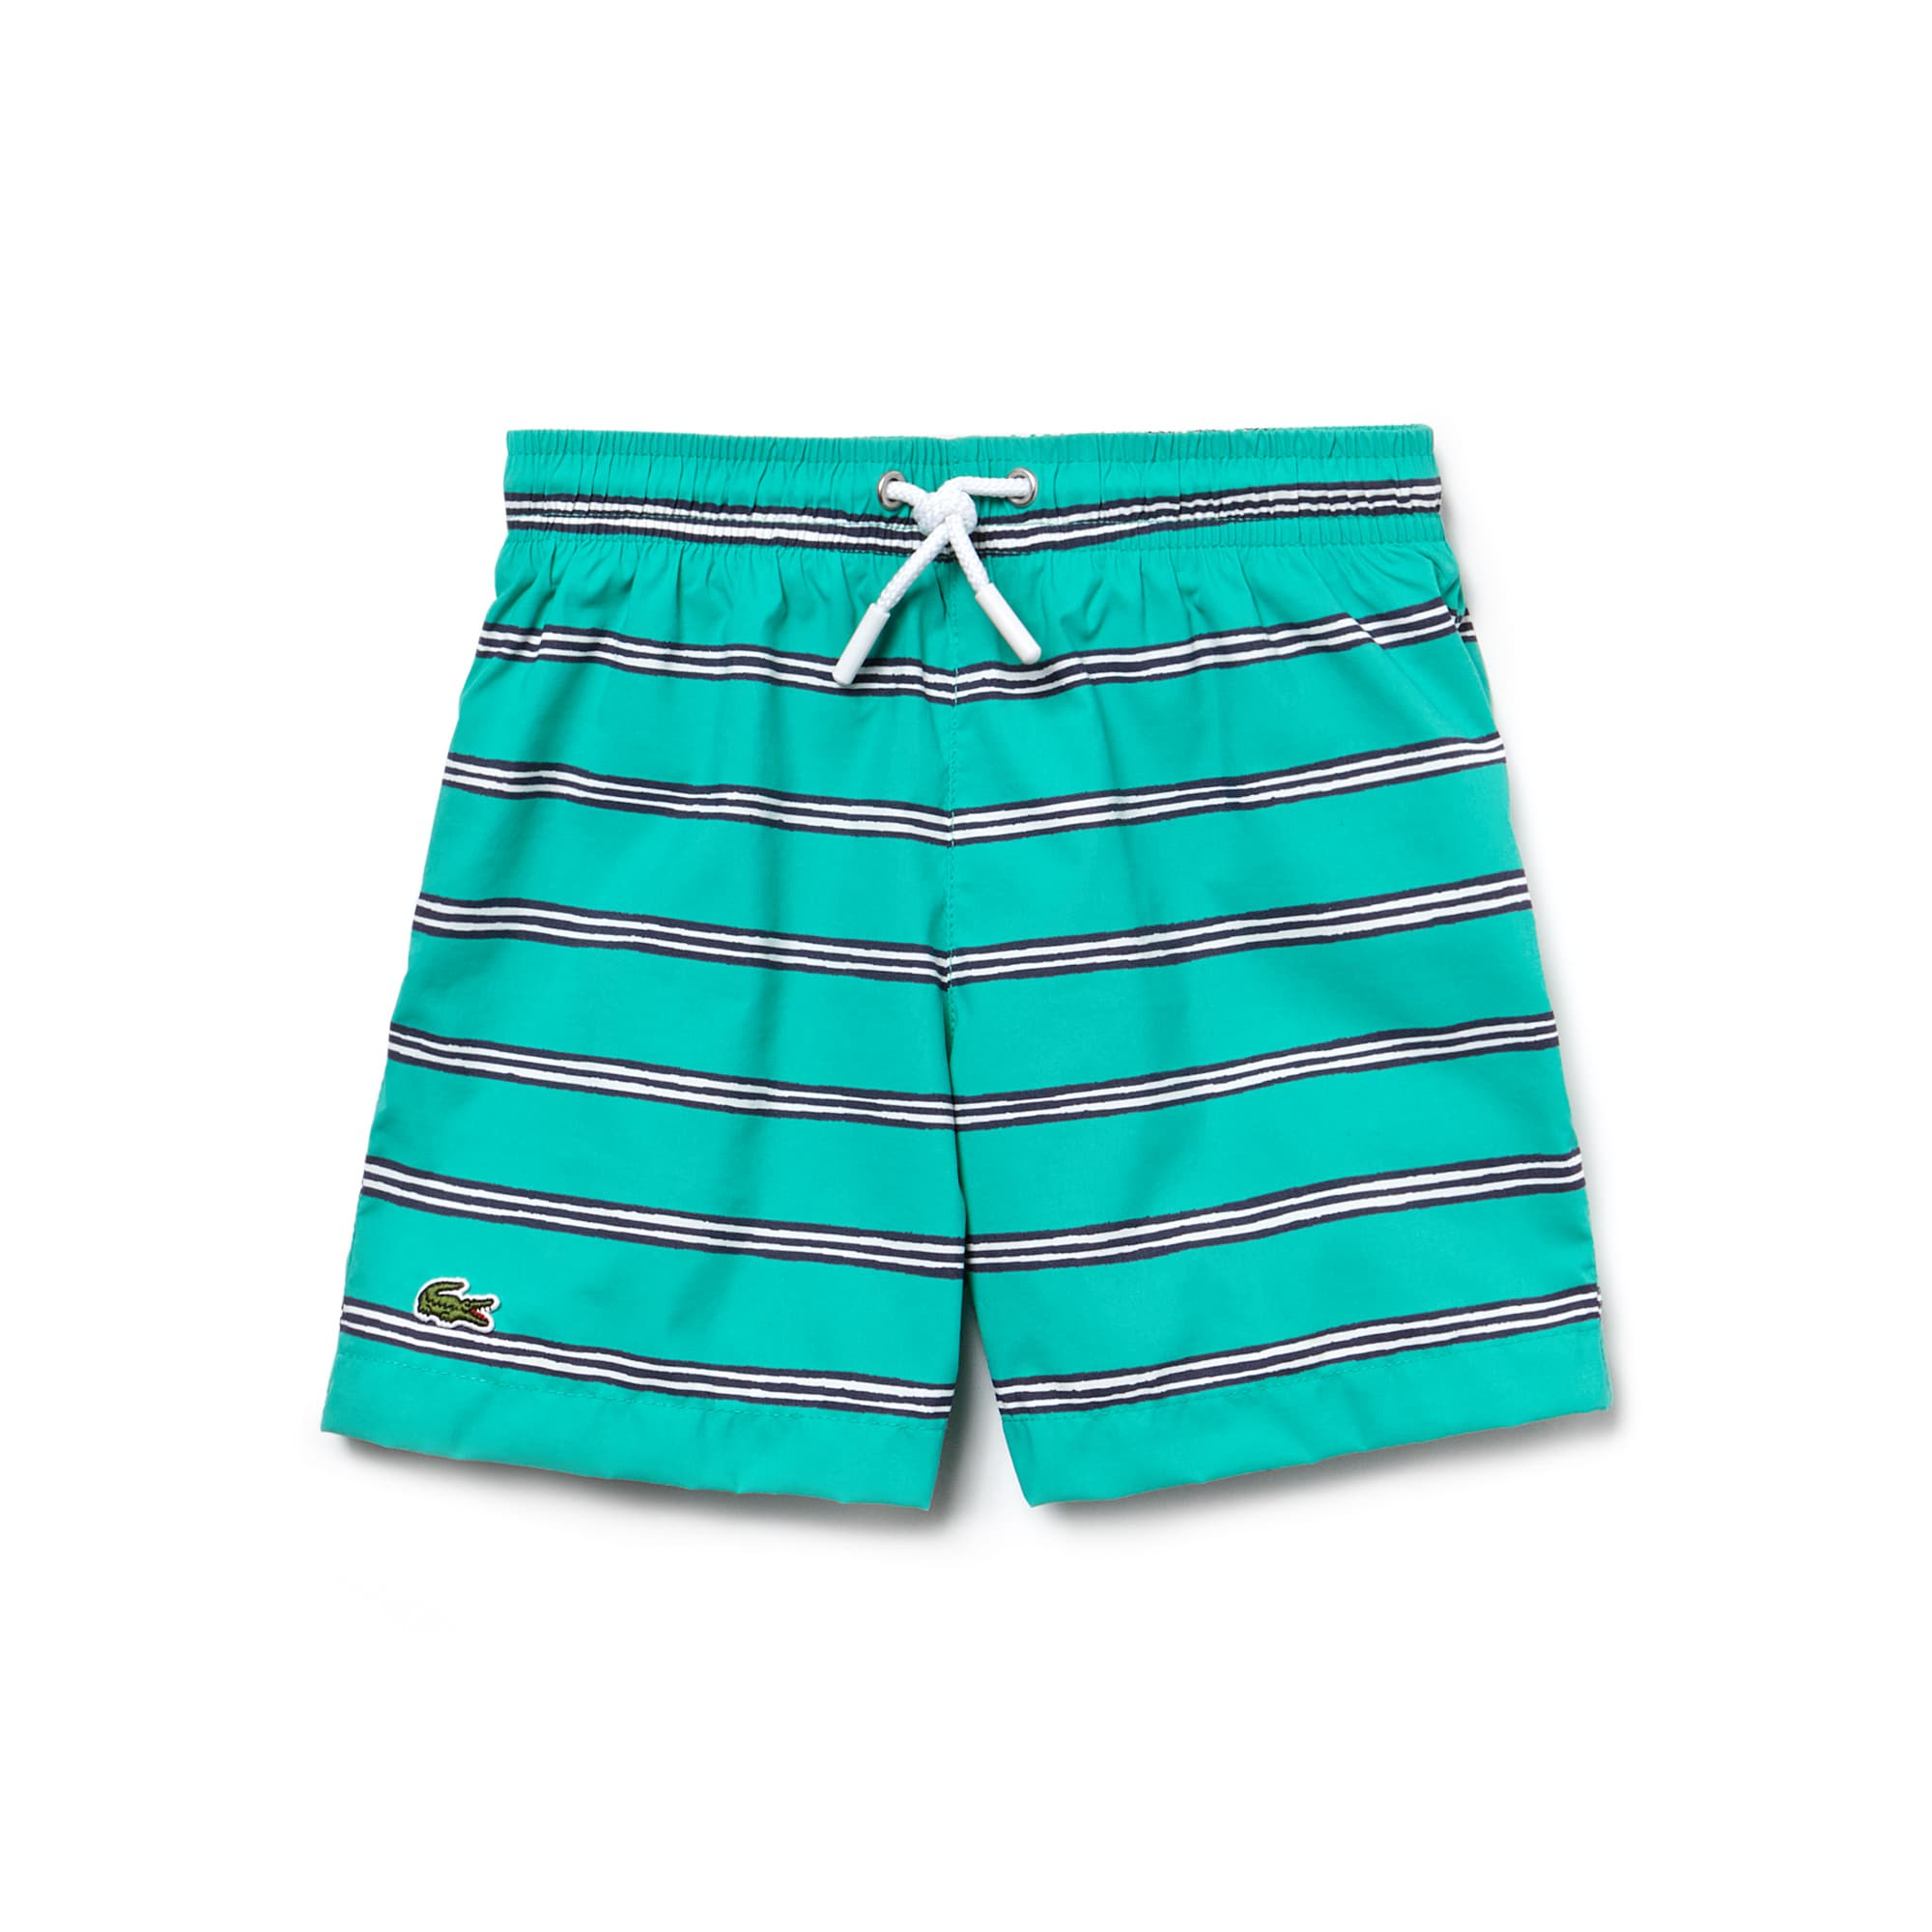 Boys' Striped Canvas Swimming Trunks